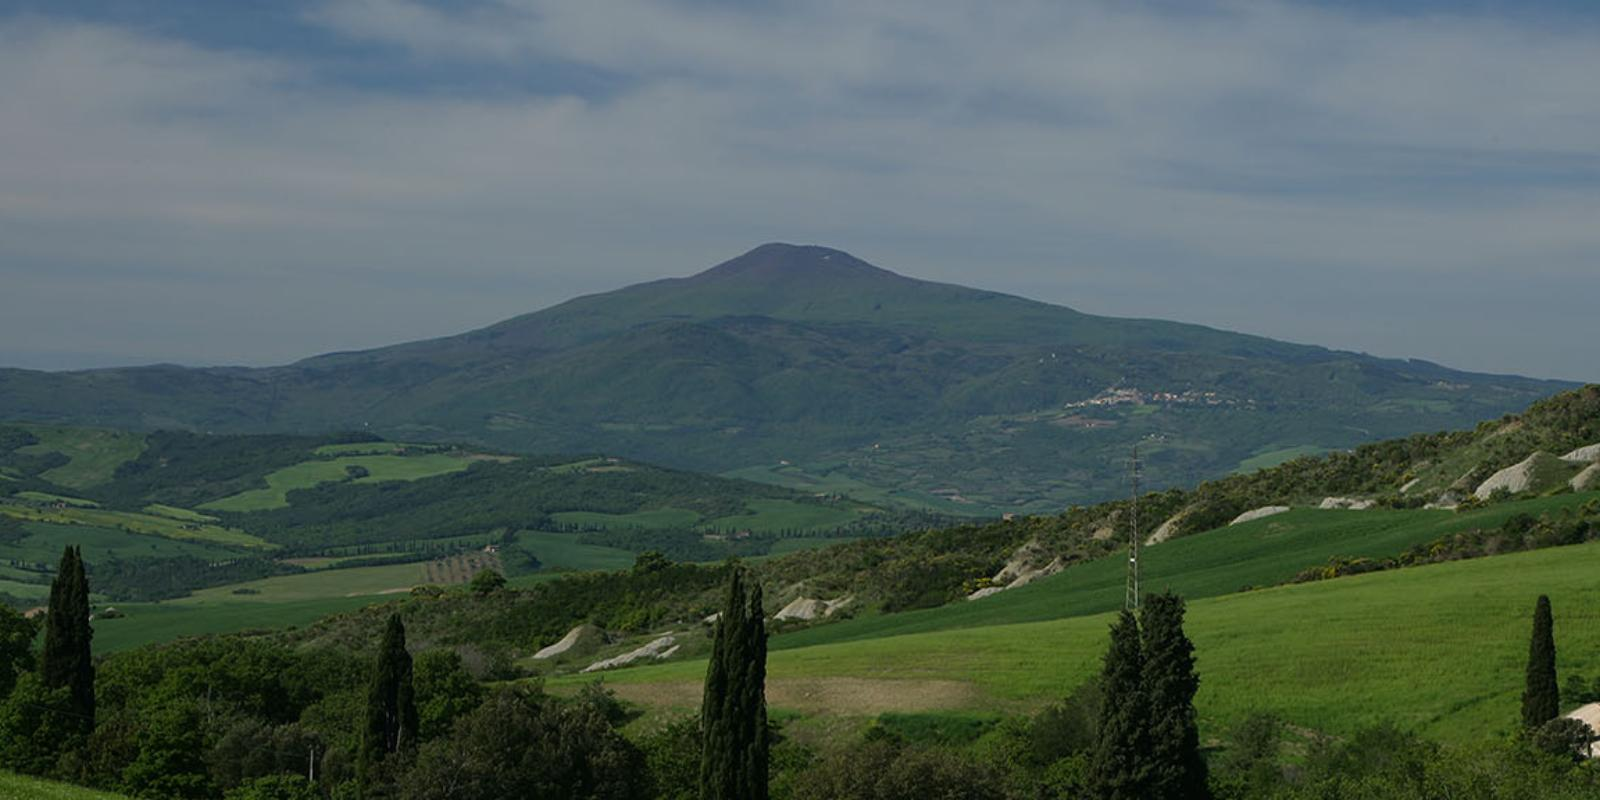 Monte Amiata, The Etruscan Sacred Mountain